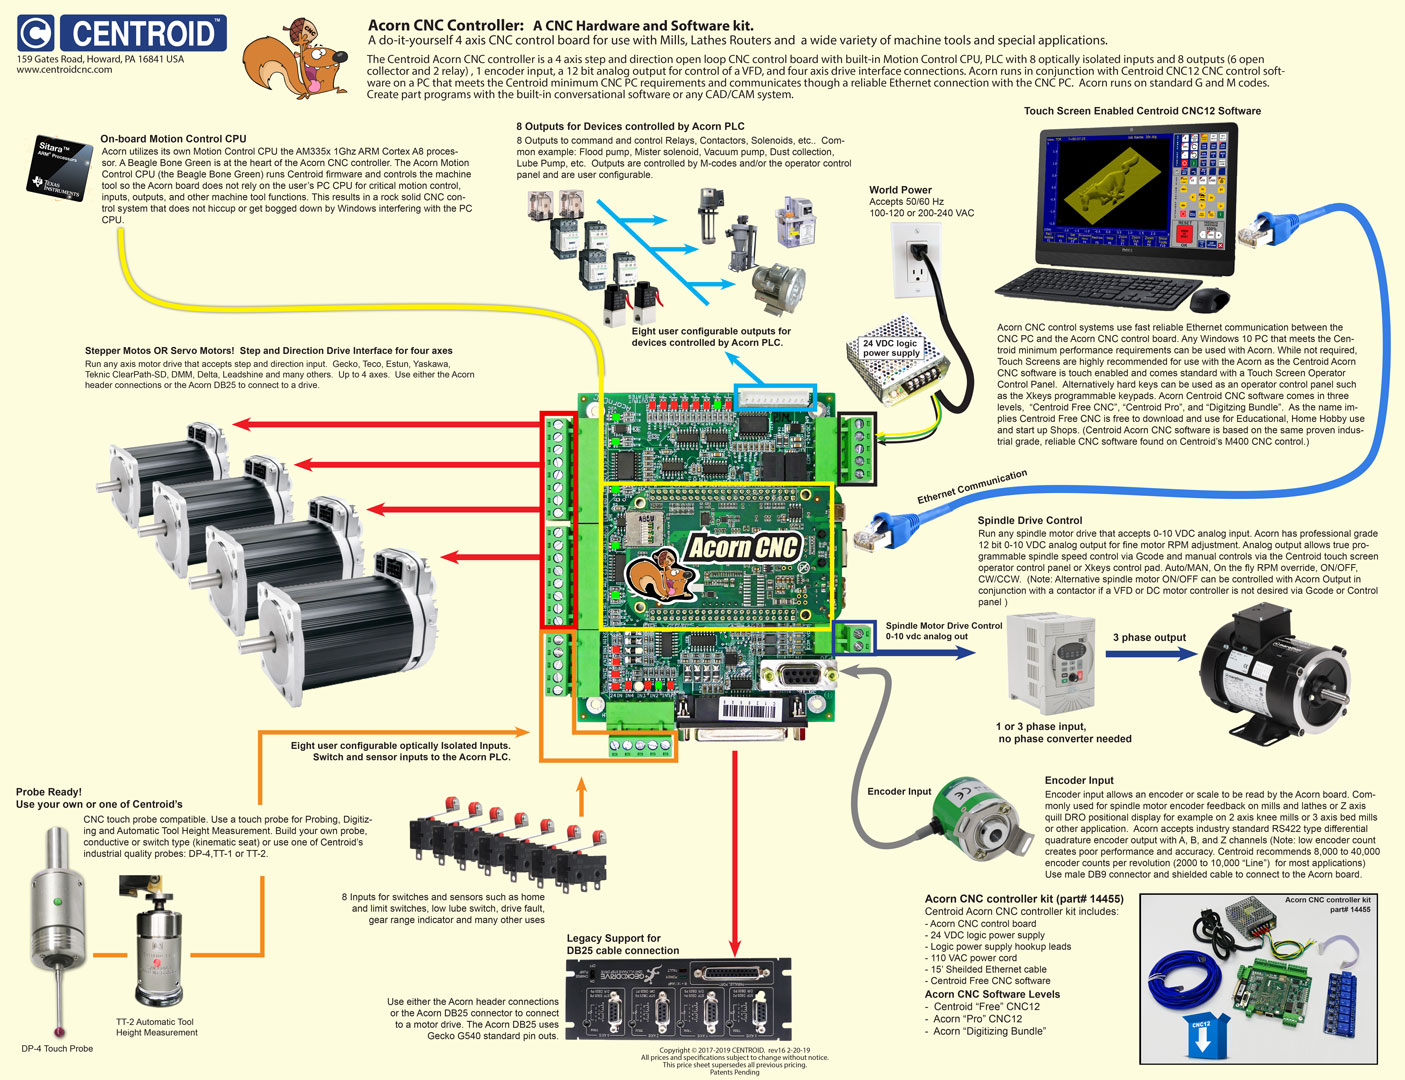 Astounding Cnc Controller Wiring Diagram Online Wiring Diagram Wiring Digital Resources Funapmognl